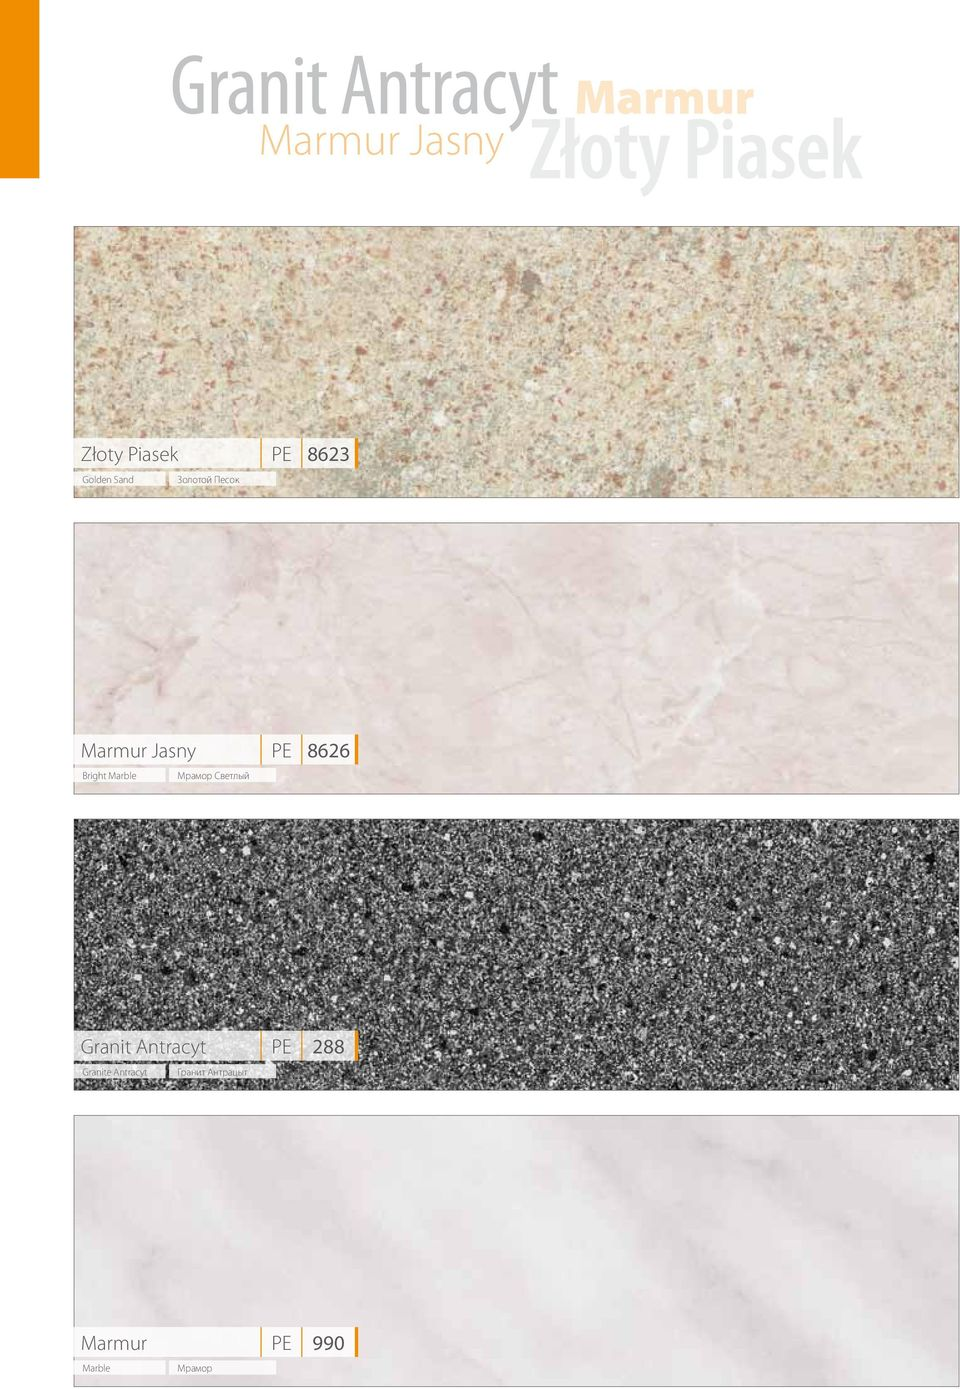 Bright Marble Мрамор Светлый PE 8626 Granit Antracyt